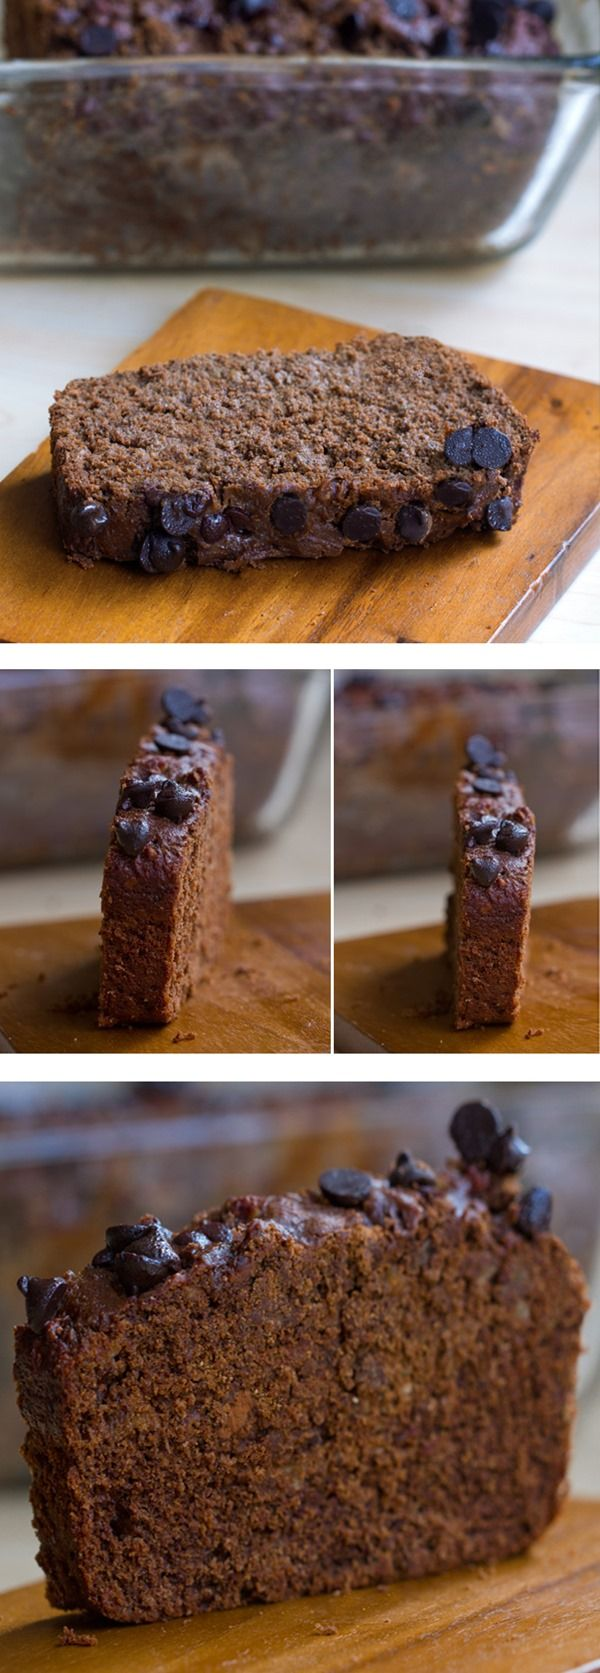 Thick, rich, peanut buttery, fudgy, hot-from-the-oven chocolate peanut butter banana bread with no refined sugar in the recipe! Need I say more? Full recipe link: http://chocolatecoveredkatie.com/2015/07/08/chocolate-peanut-butter-banana-bread/